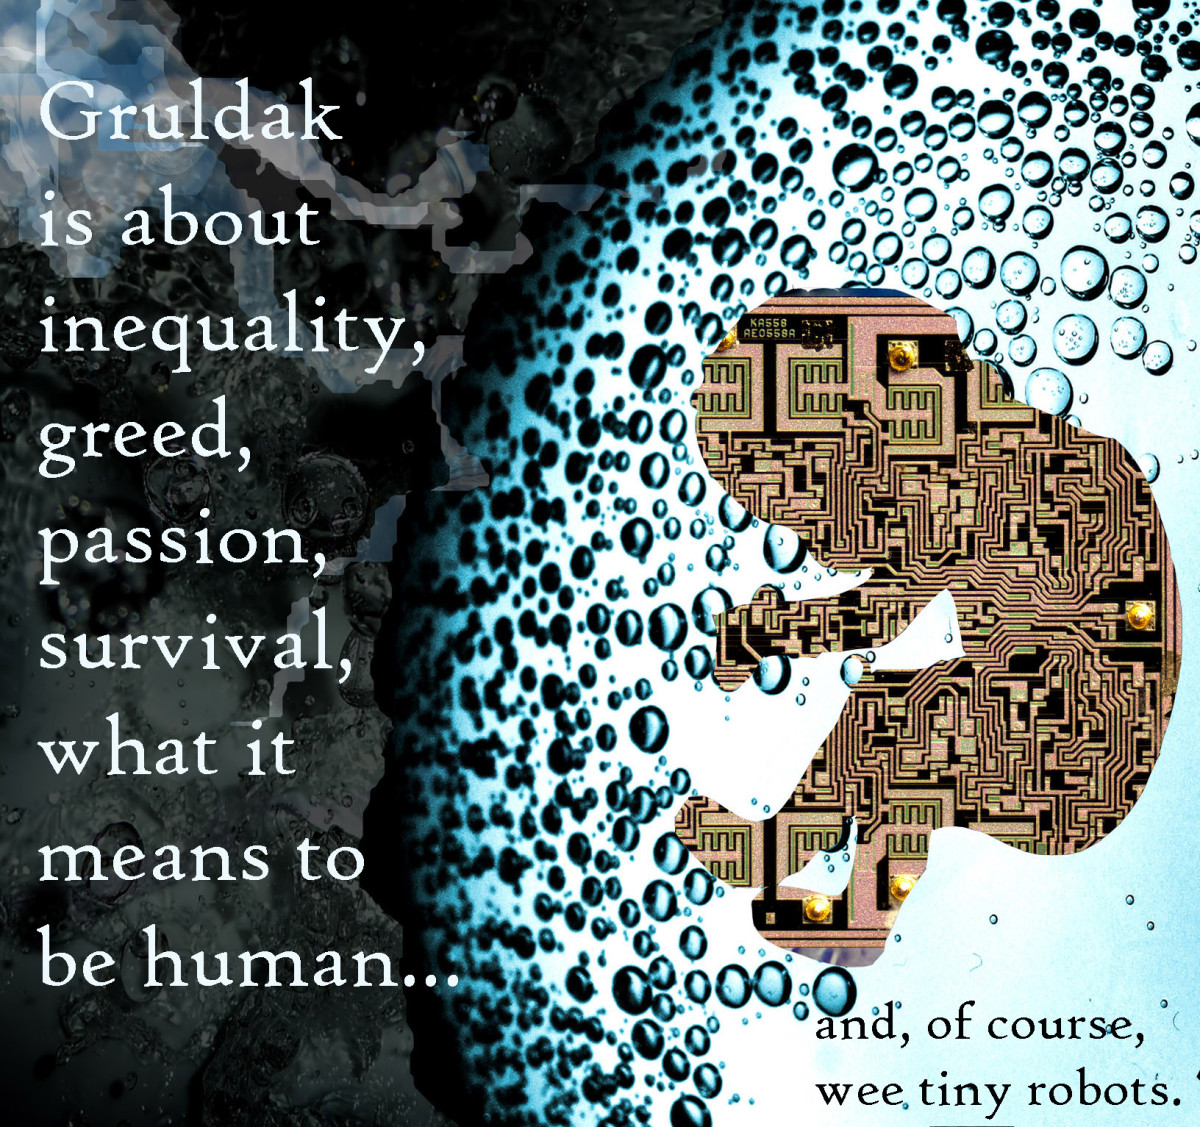 Gift of the Gruldak, Chapter 16: Of Seeds Planted